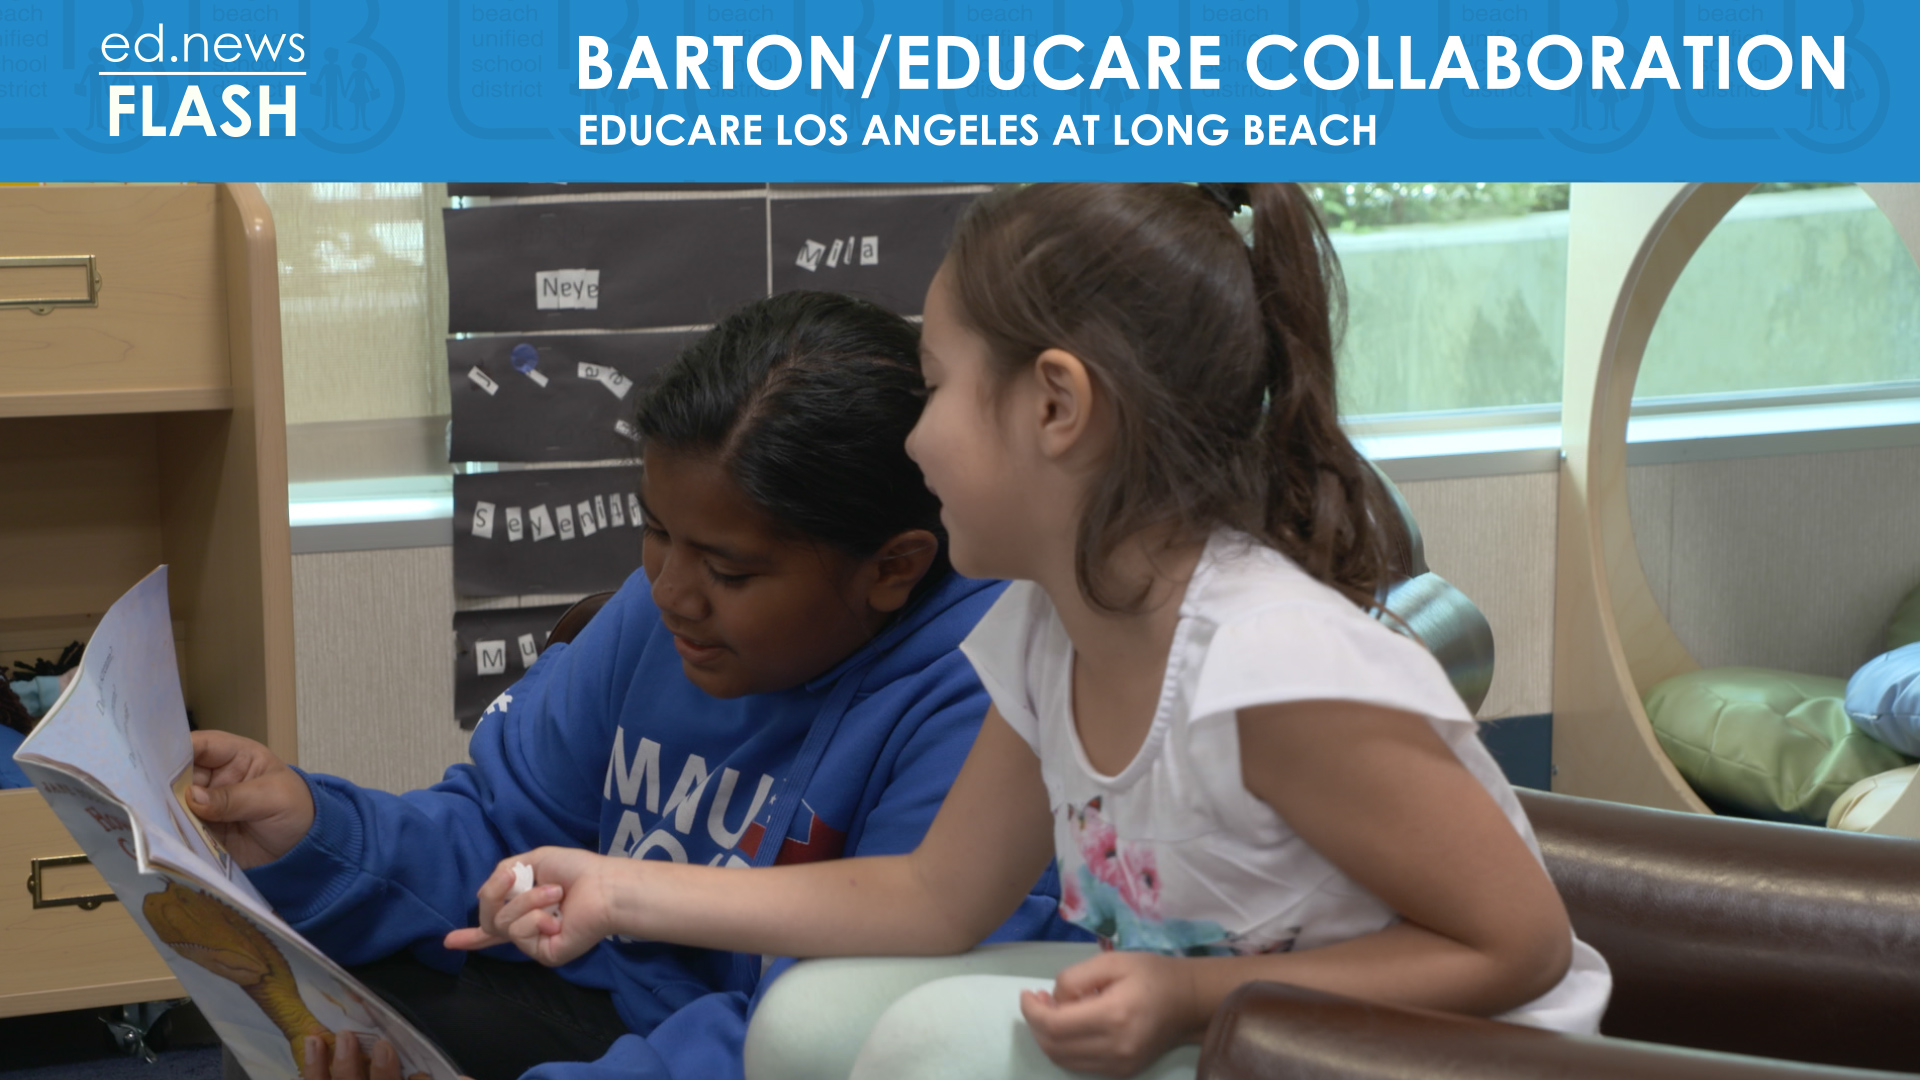 ed.news Flash - Barton / Educare Collaboration - Video